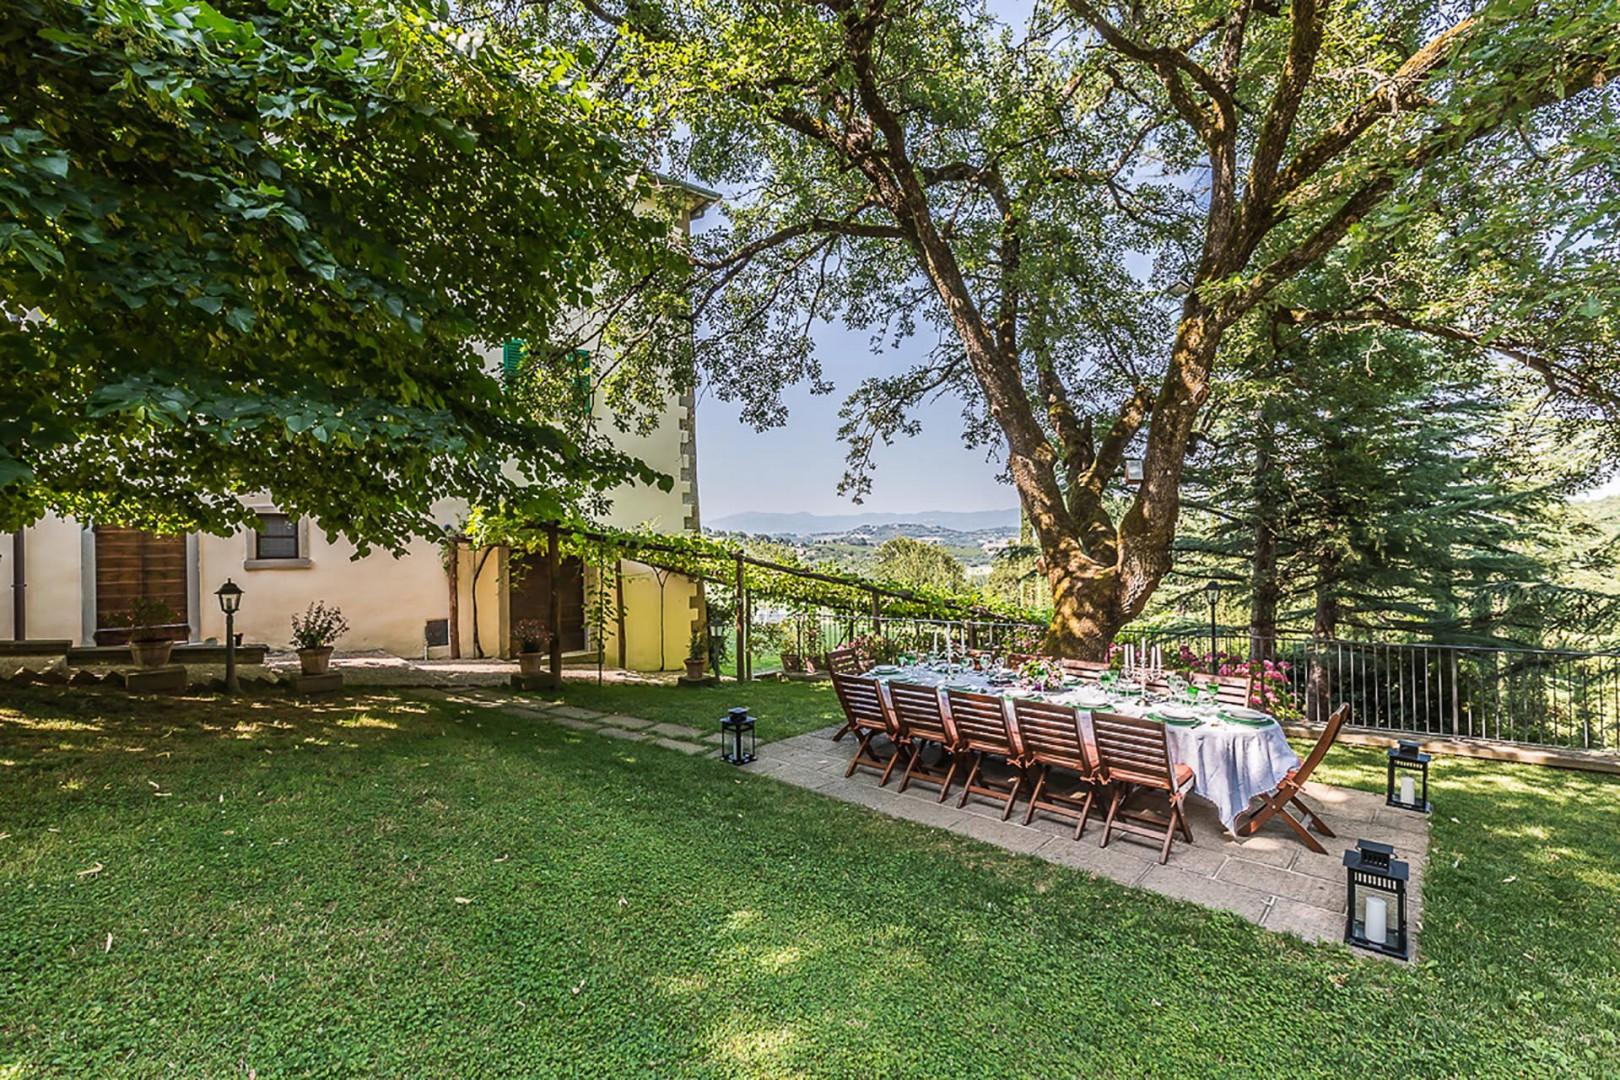 Enjoy the storybook setting of this villa while dining outside.